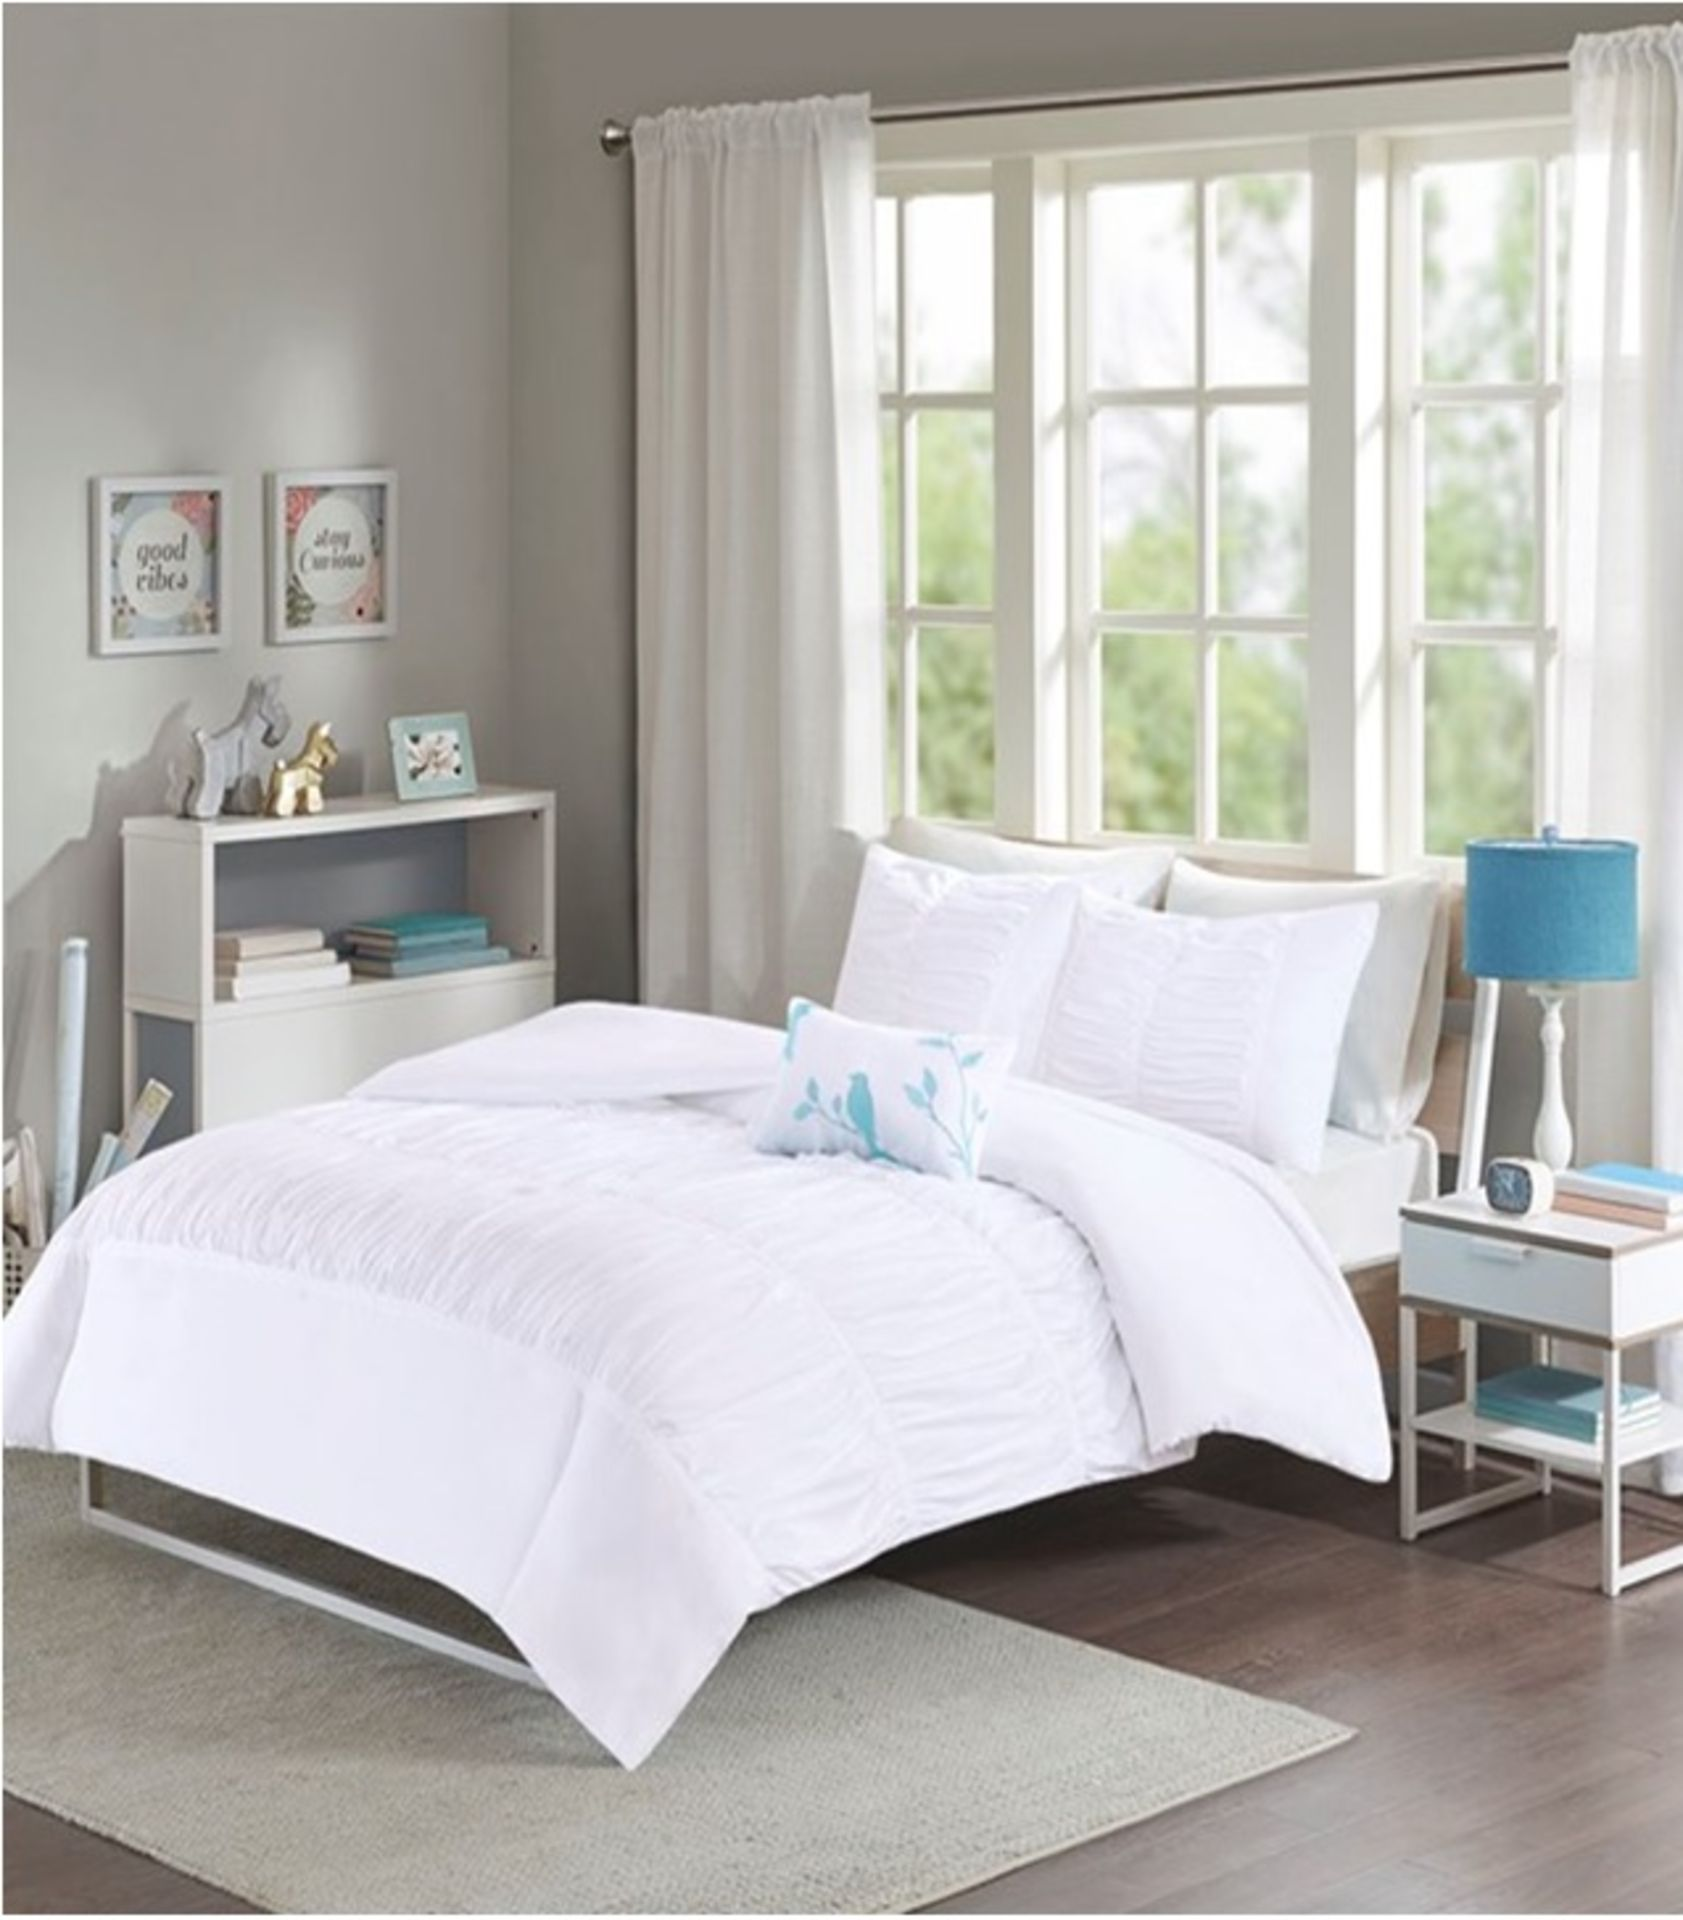 Lot 56 - 1 x Madison Park Mirimar Double Duvet Set White - Product Code MP12-0023UK (Brand New - RRP £39.99)